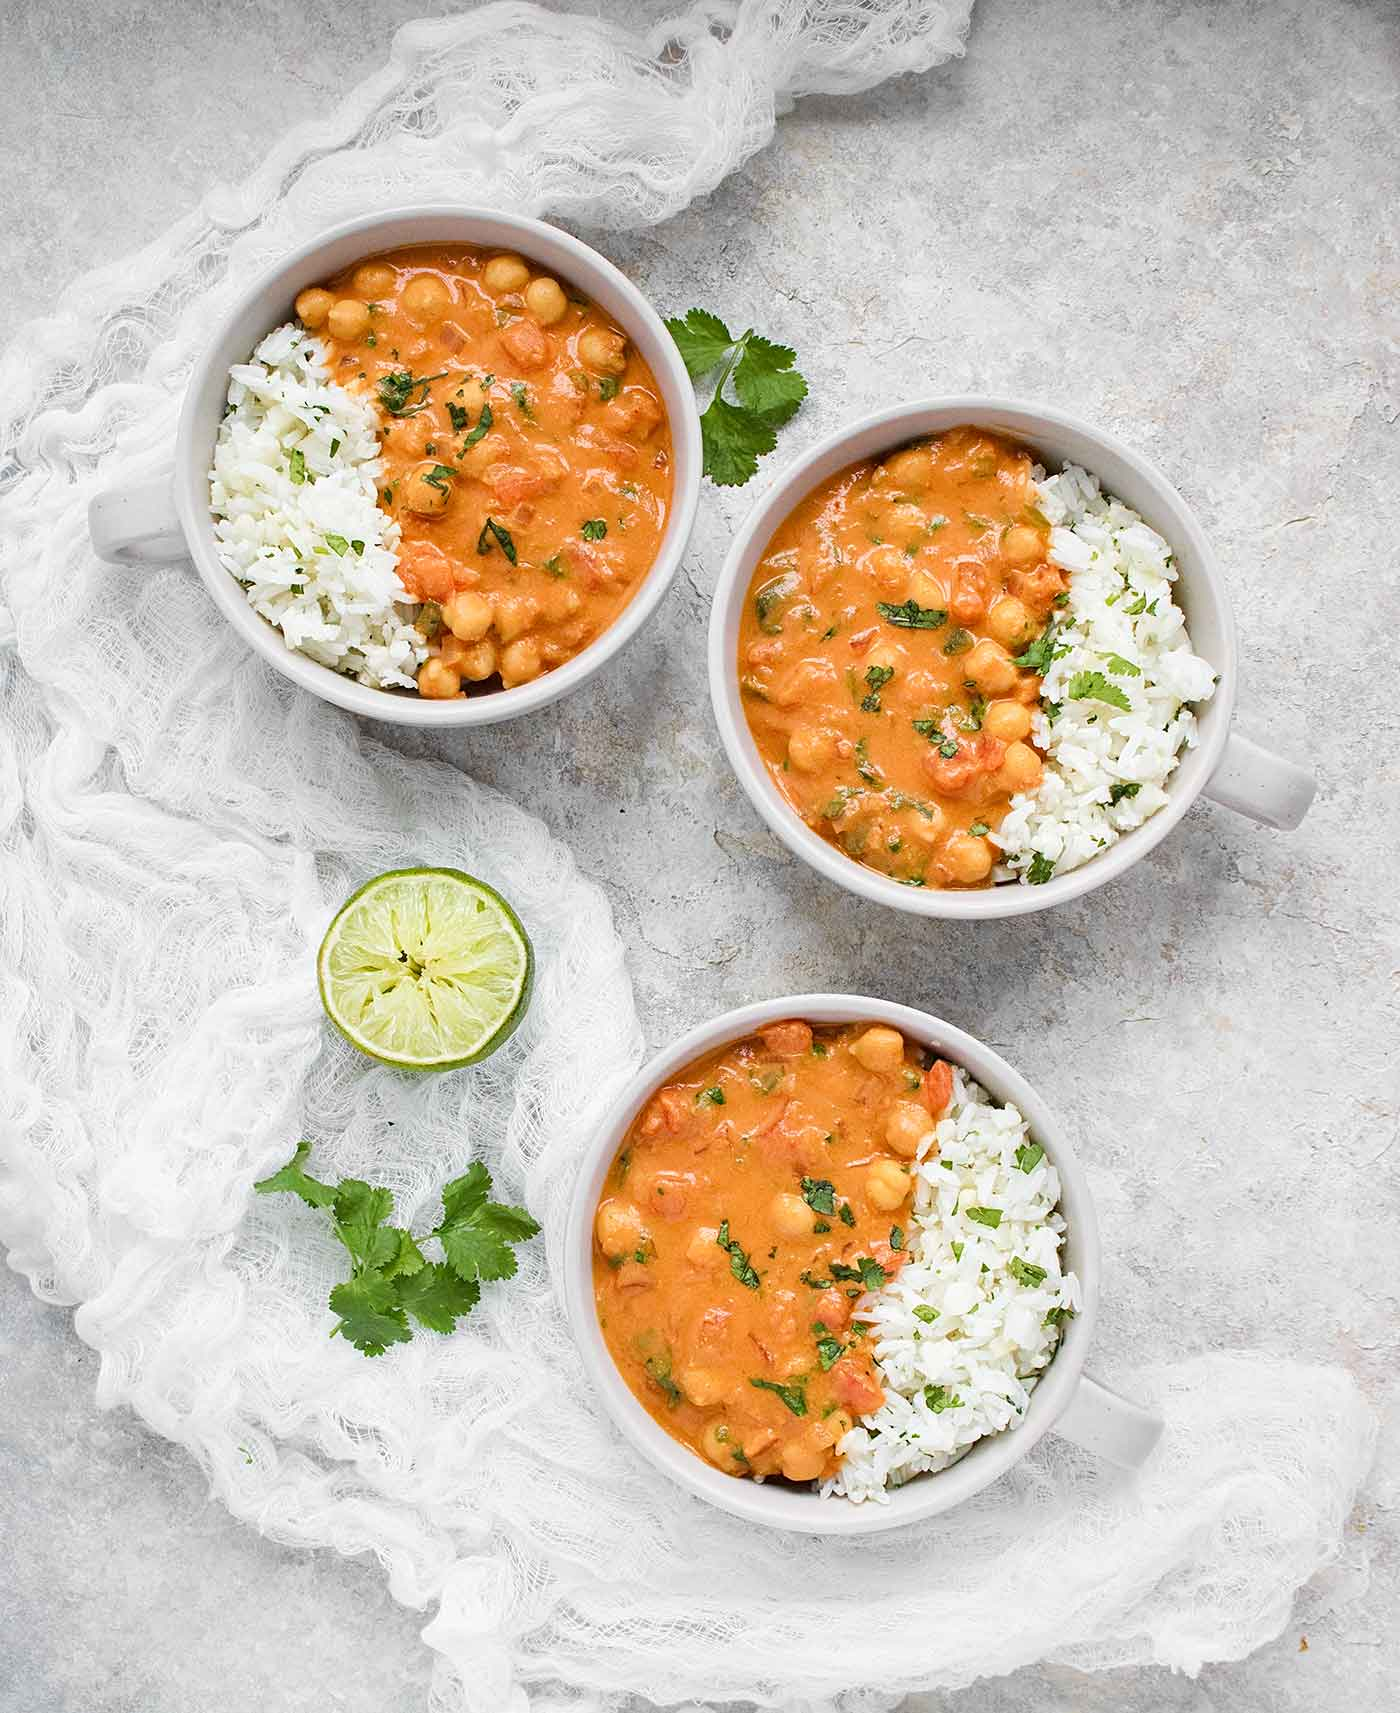 Three bowls of chickpea peanut stew served with cauliflower rice blend